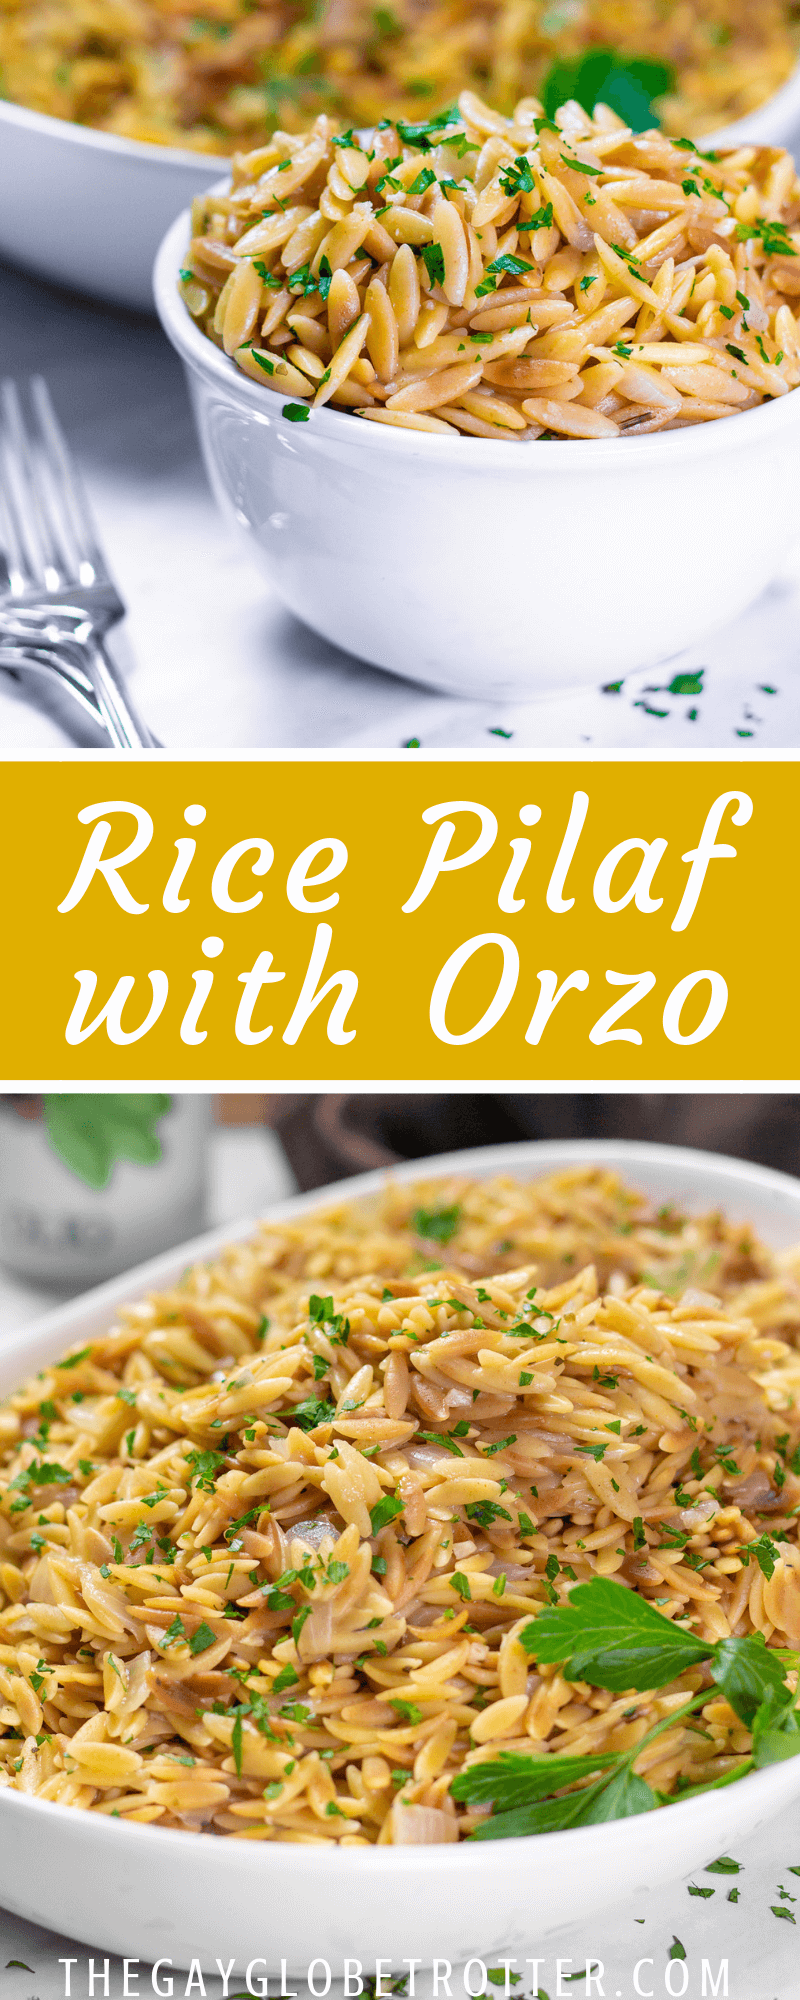 Rice Pilaf with Orzo